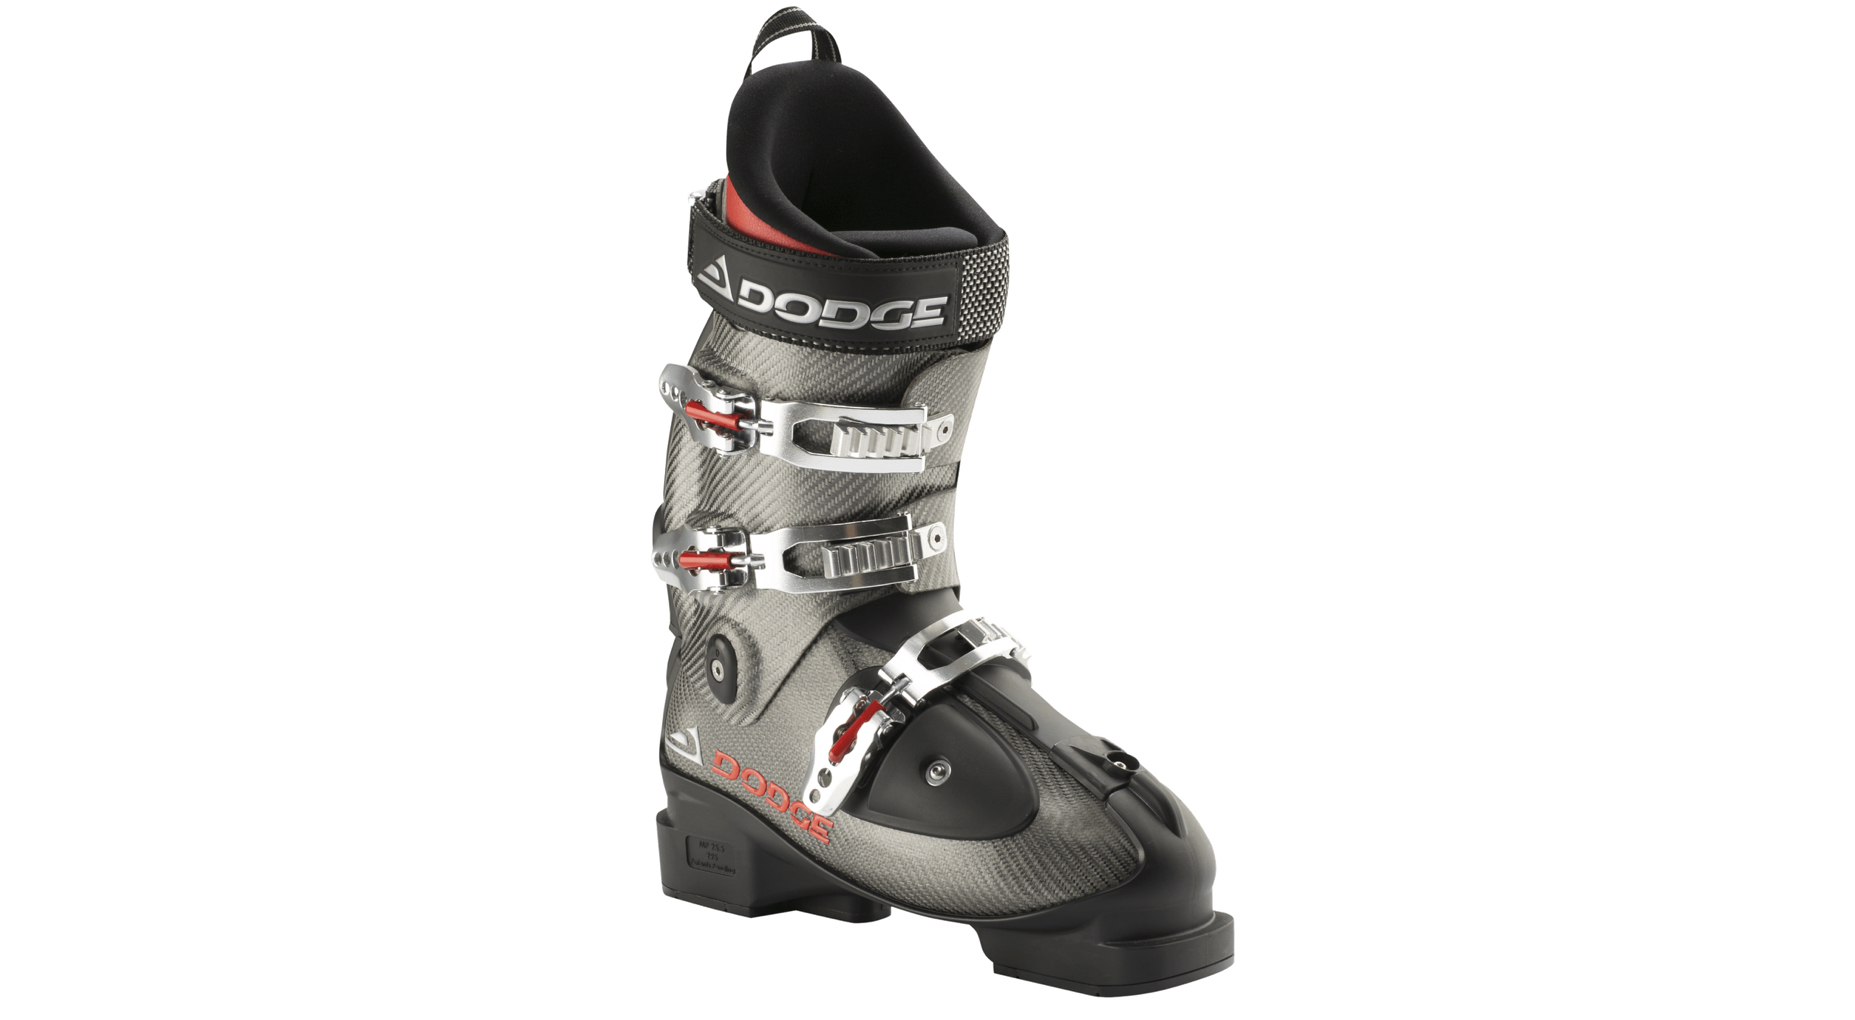 2014 2015 Dodge Ski Boot Blister Gear Review Skis